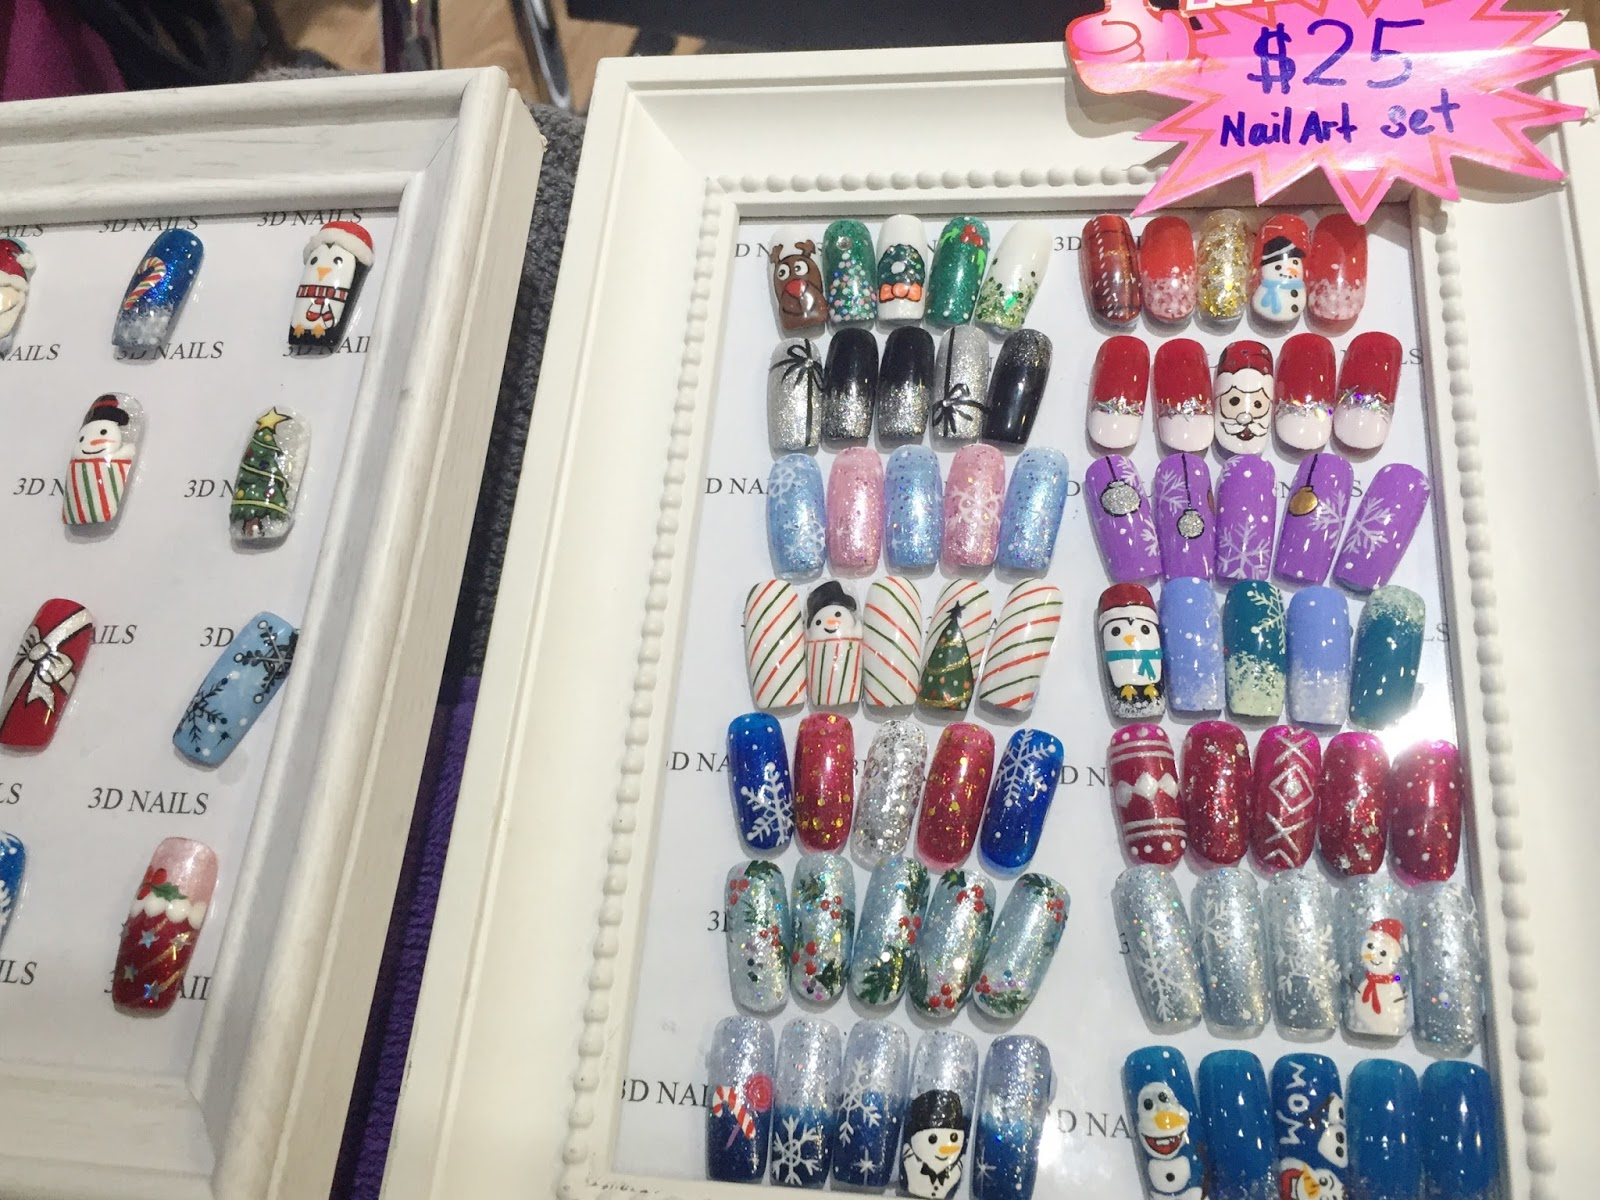 3d Nails Jurong East Singapore Gelish Nail Art At Only S25nett